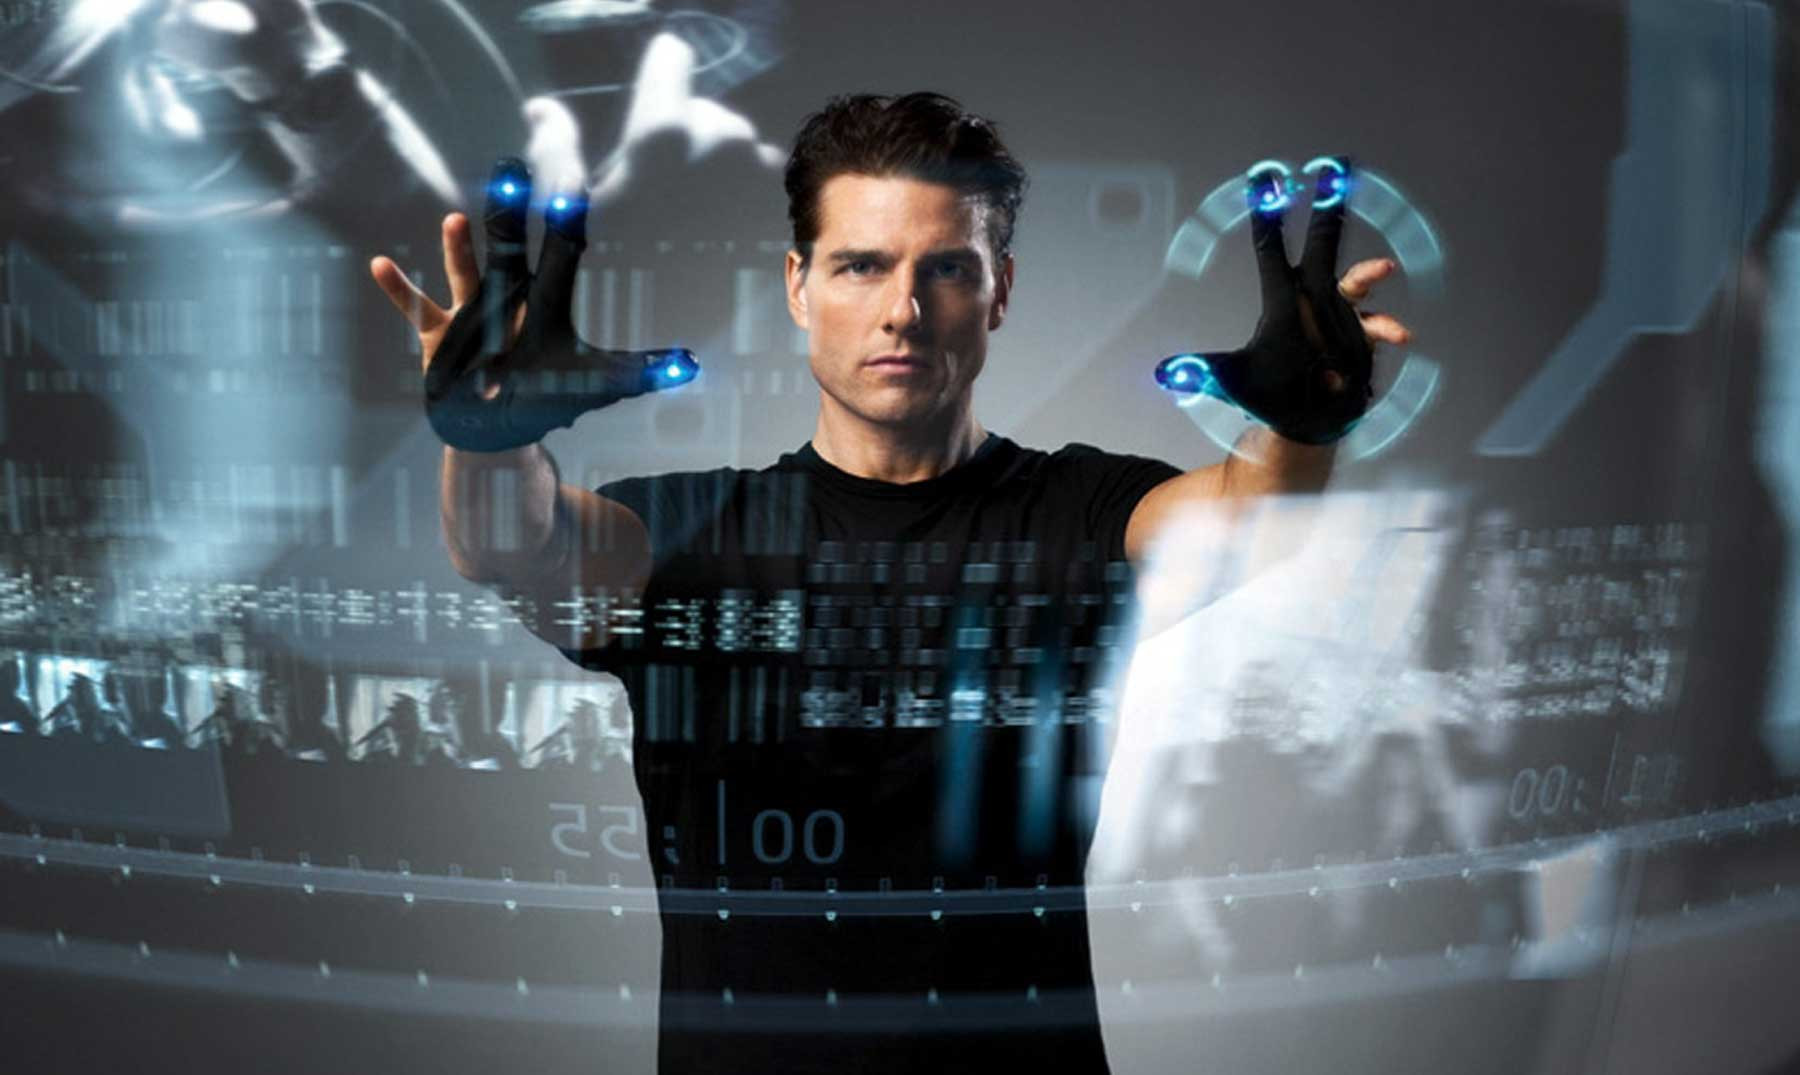 Présentation de l'interface de Minority Report